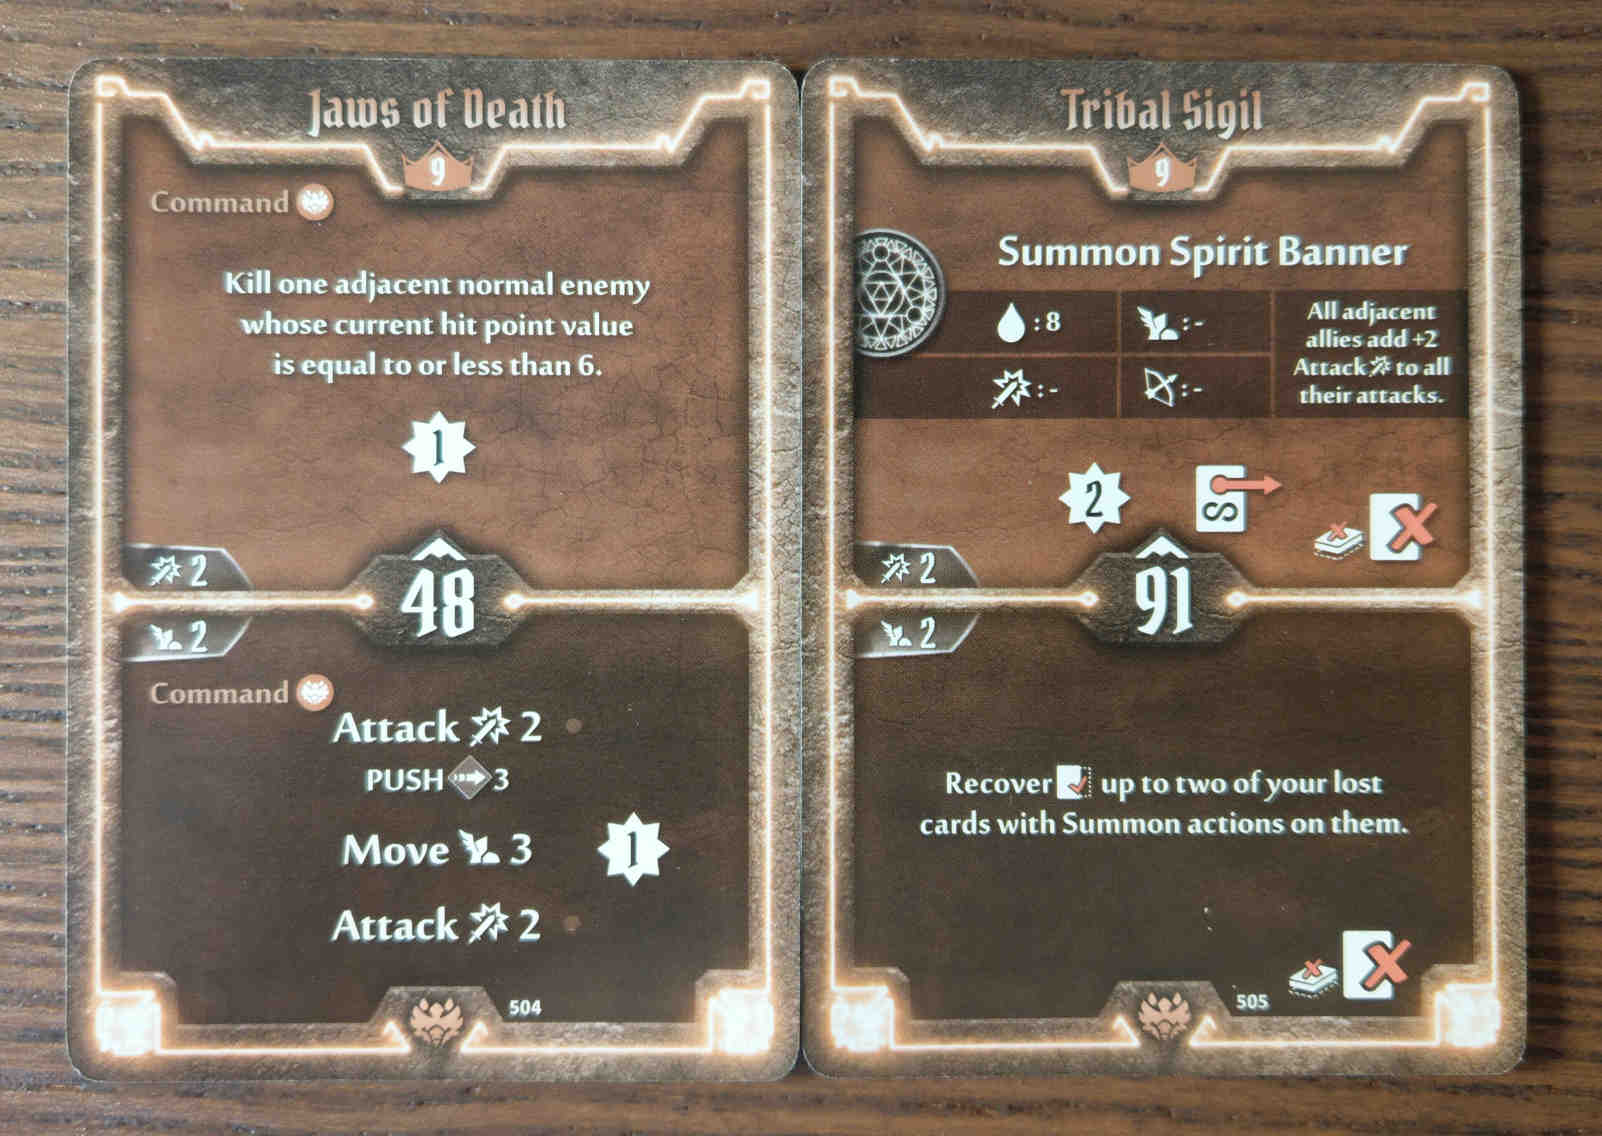 Beast Tyrant level 9 cards - Jaws of Death and Tribal Sigil